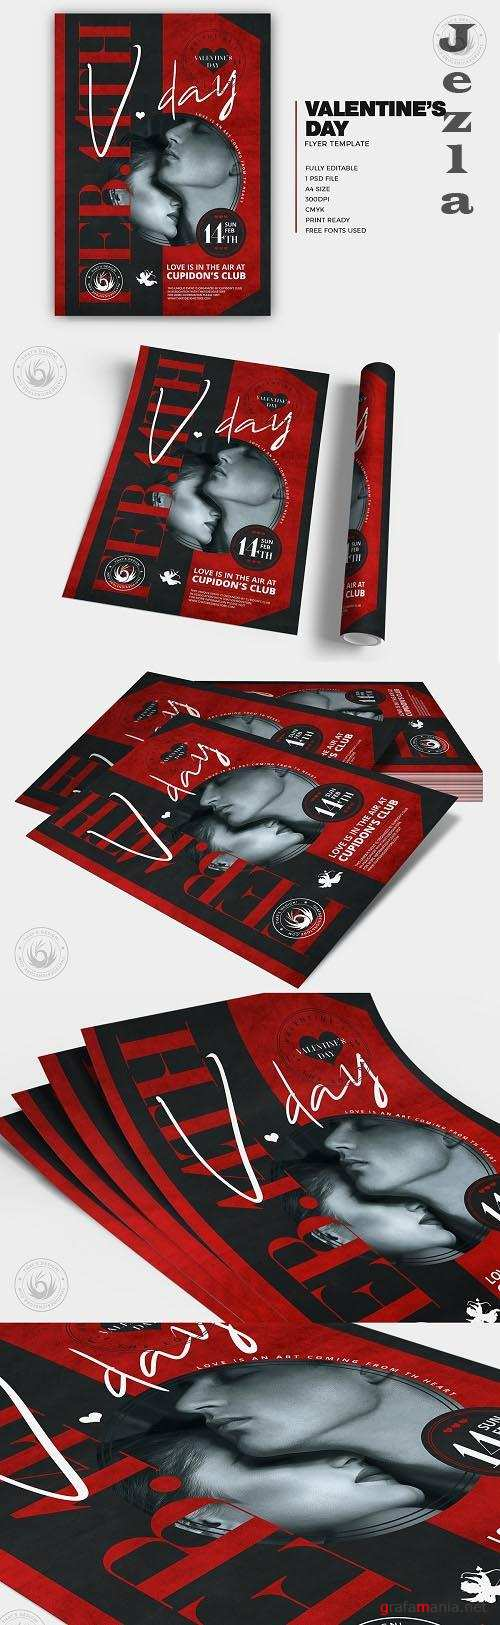 Valentines Day Flyer Template V26 - 5753837